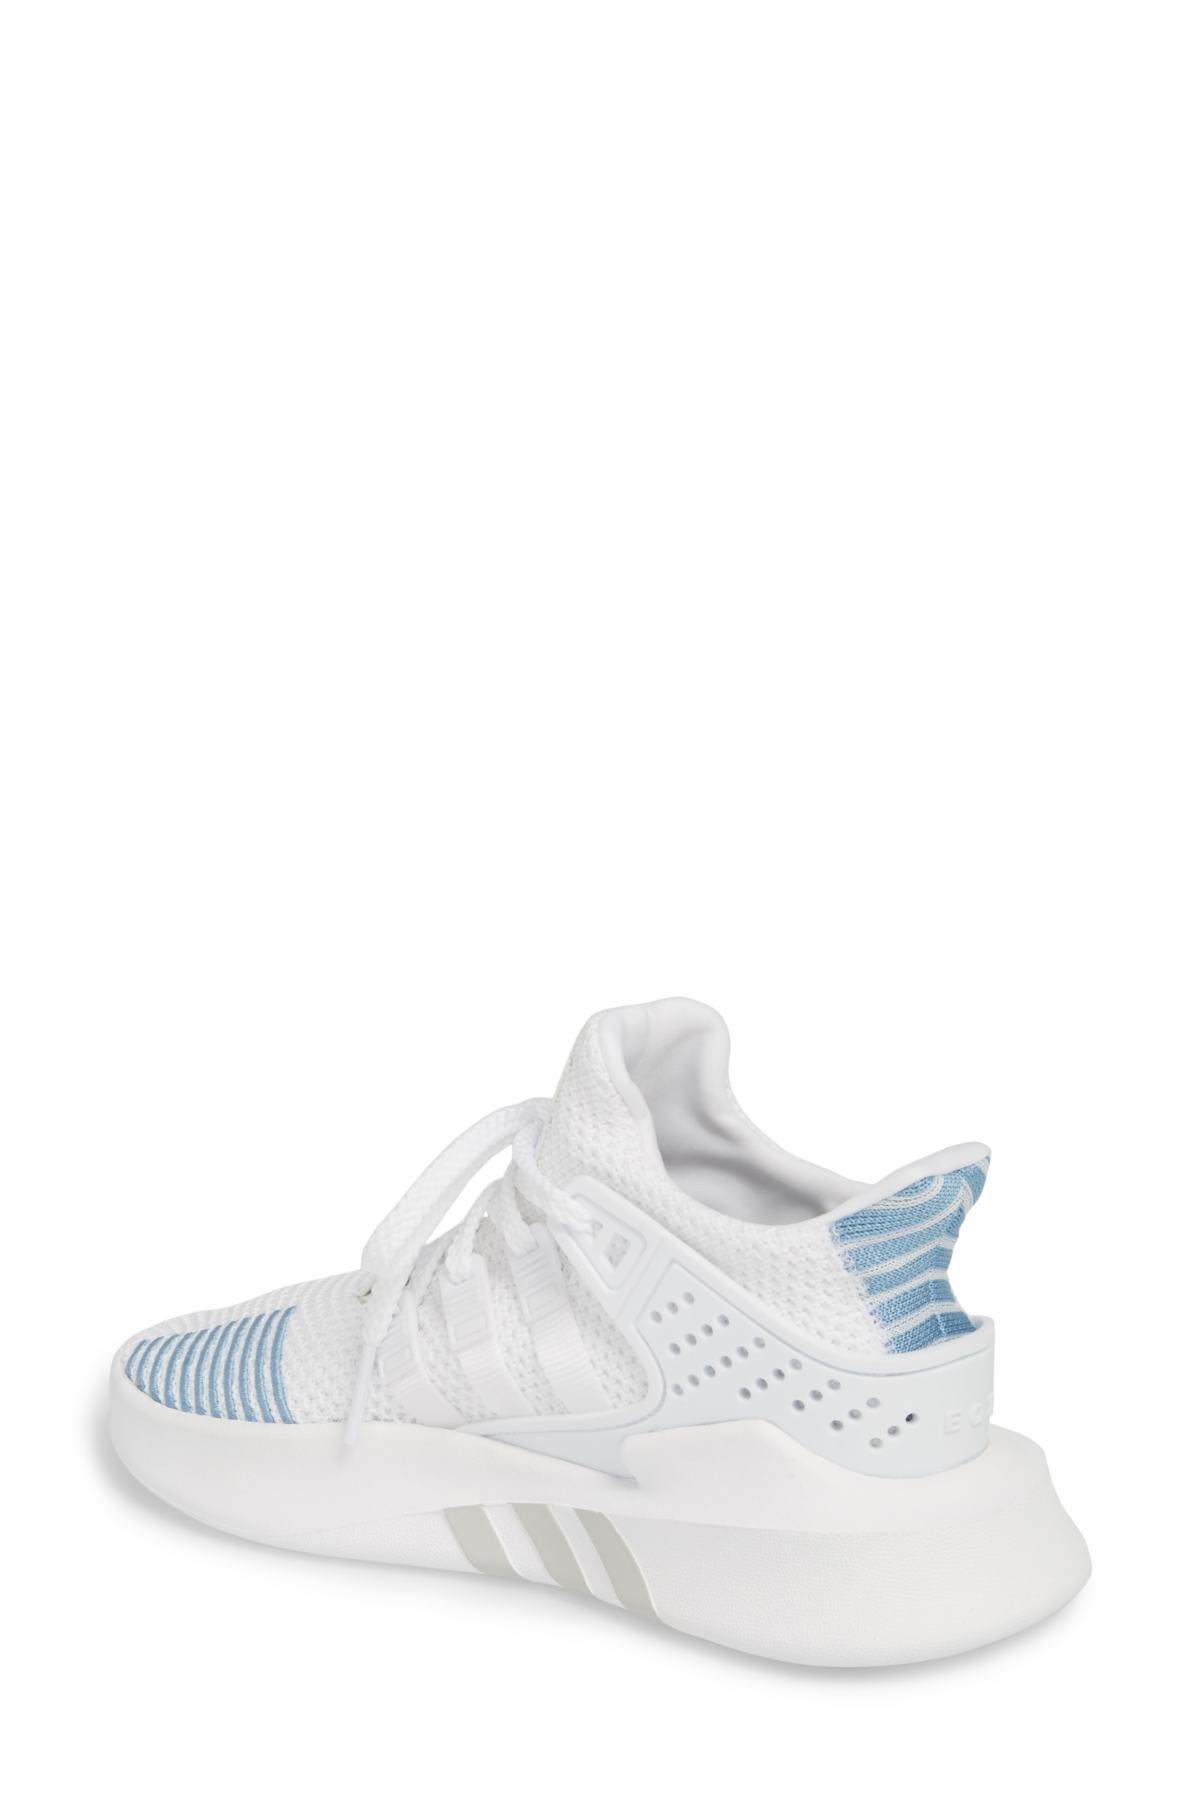 separation shoes ce26d 0a7ed Adidas - White Eqt Basketball Adv Sneaker (women) - Lyst. View fullscreen